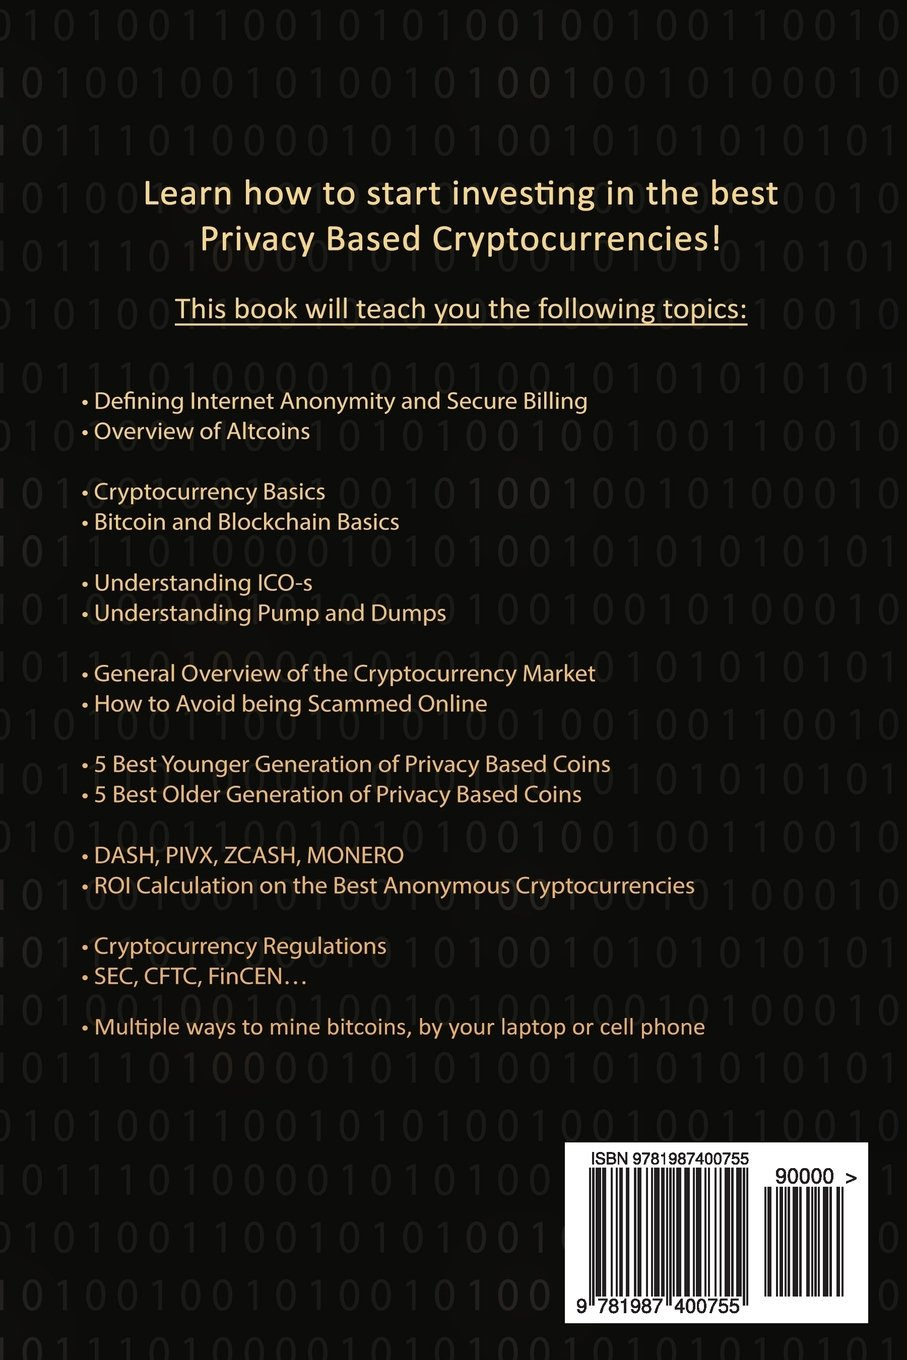 altcoin investing course anonymous cryptocurrencies